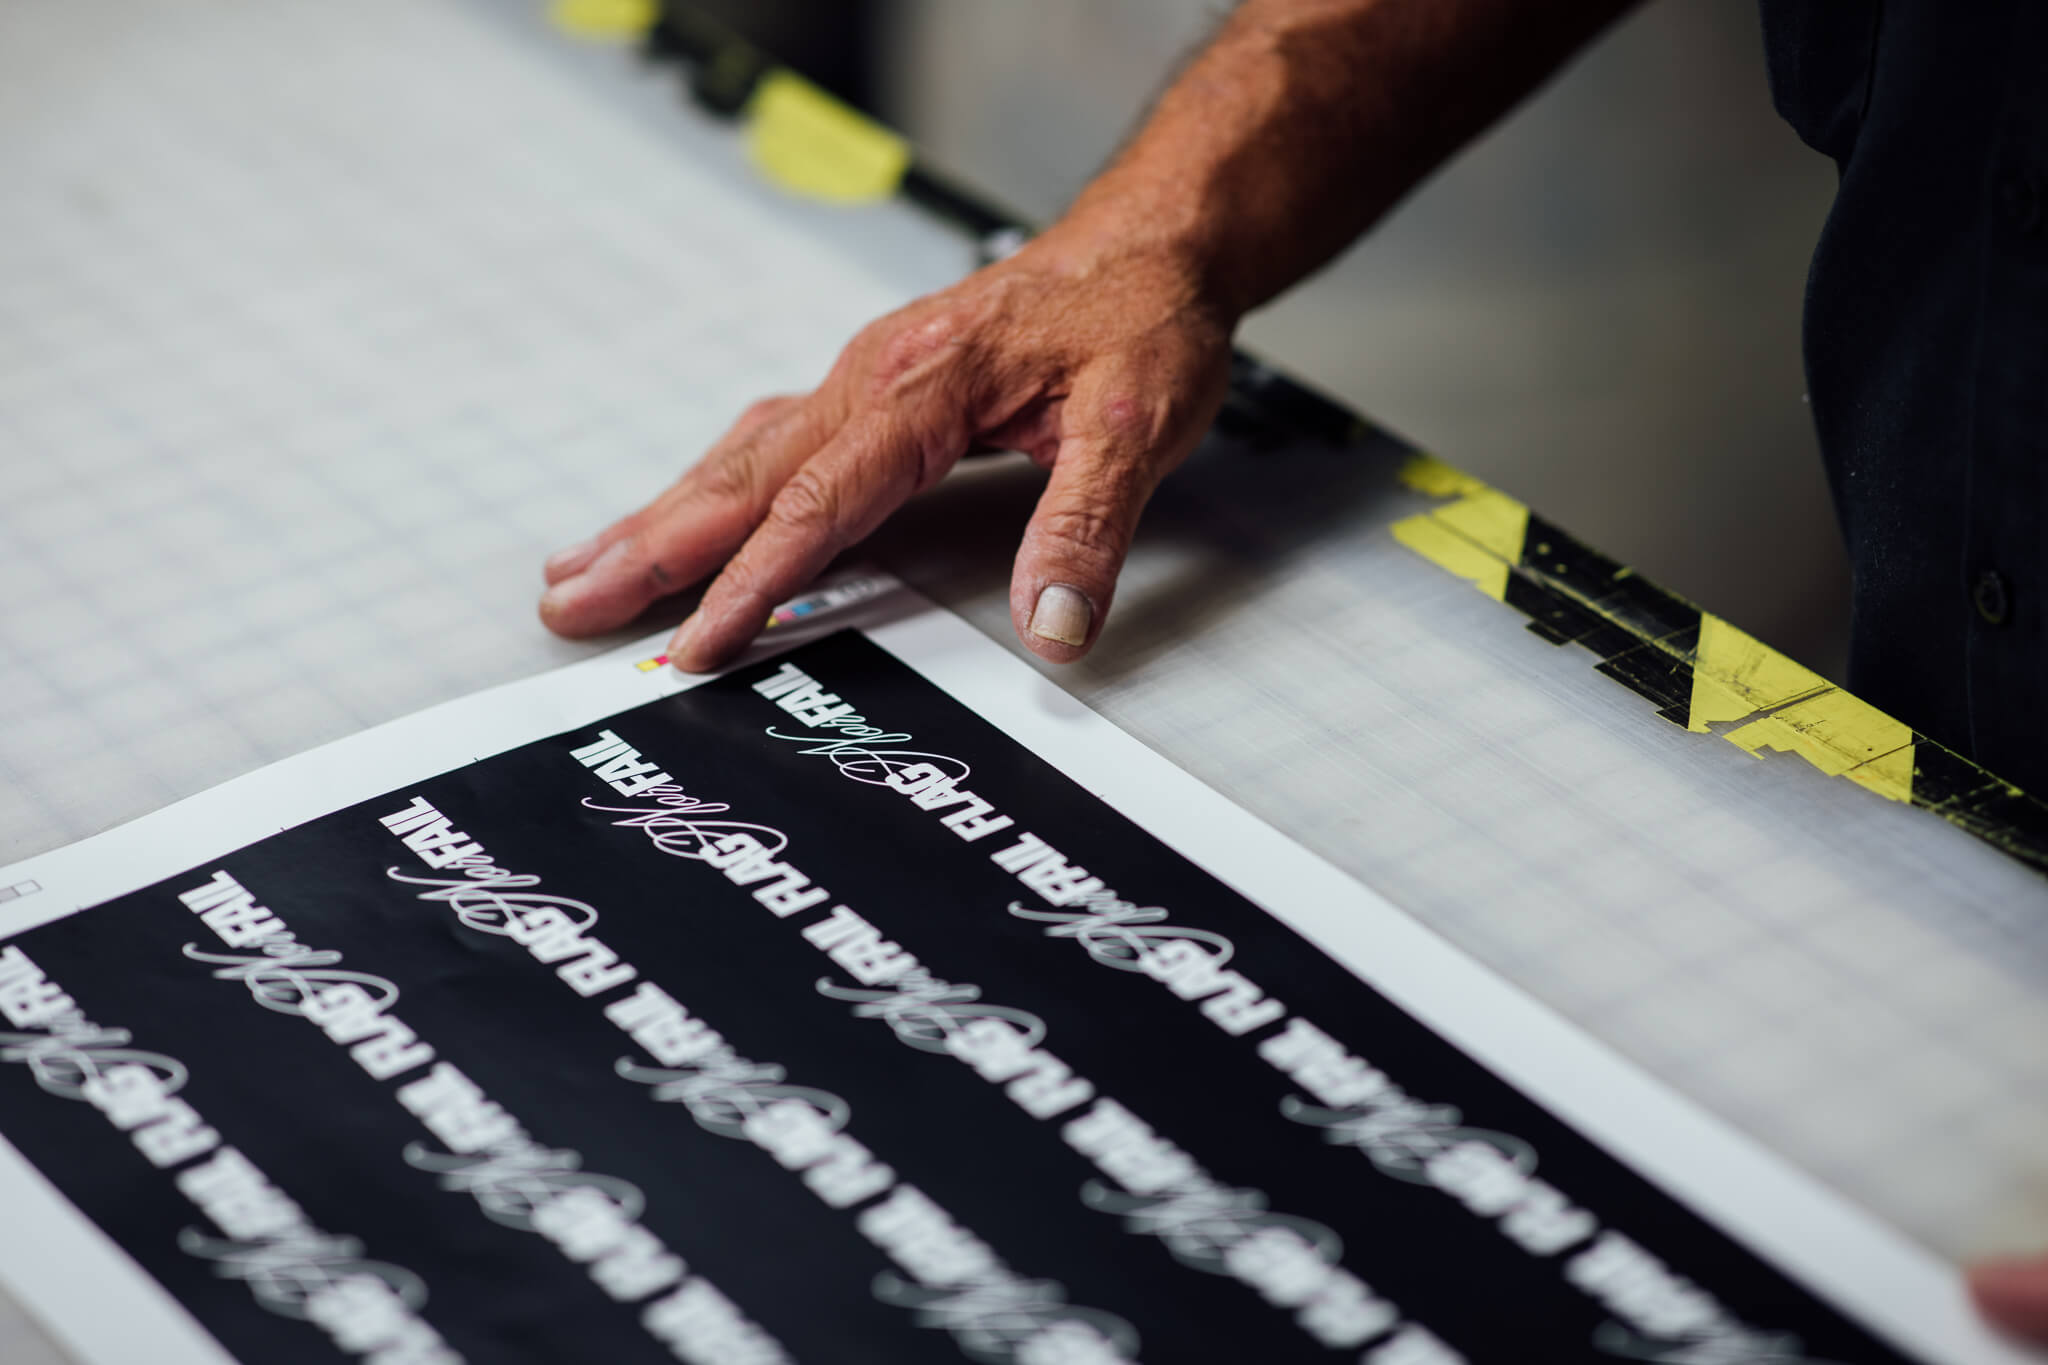 A Go Decals worker looks at a sheet of stickers placed on the table.